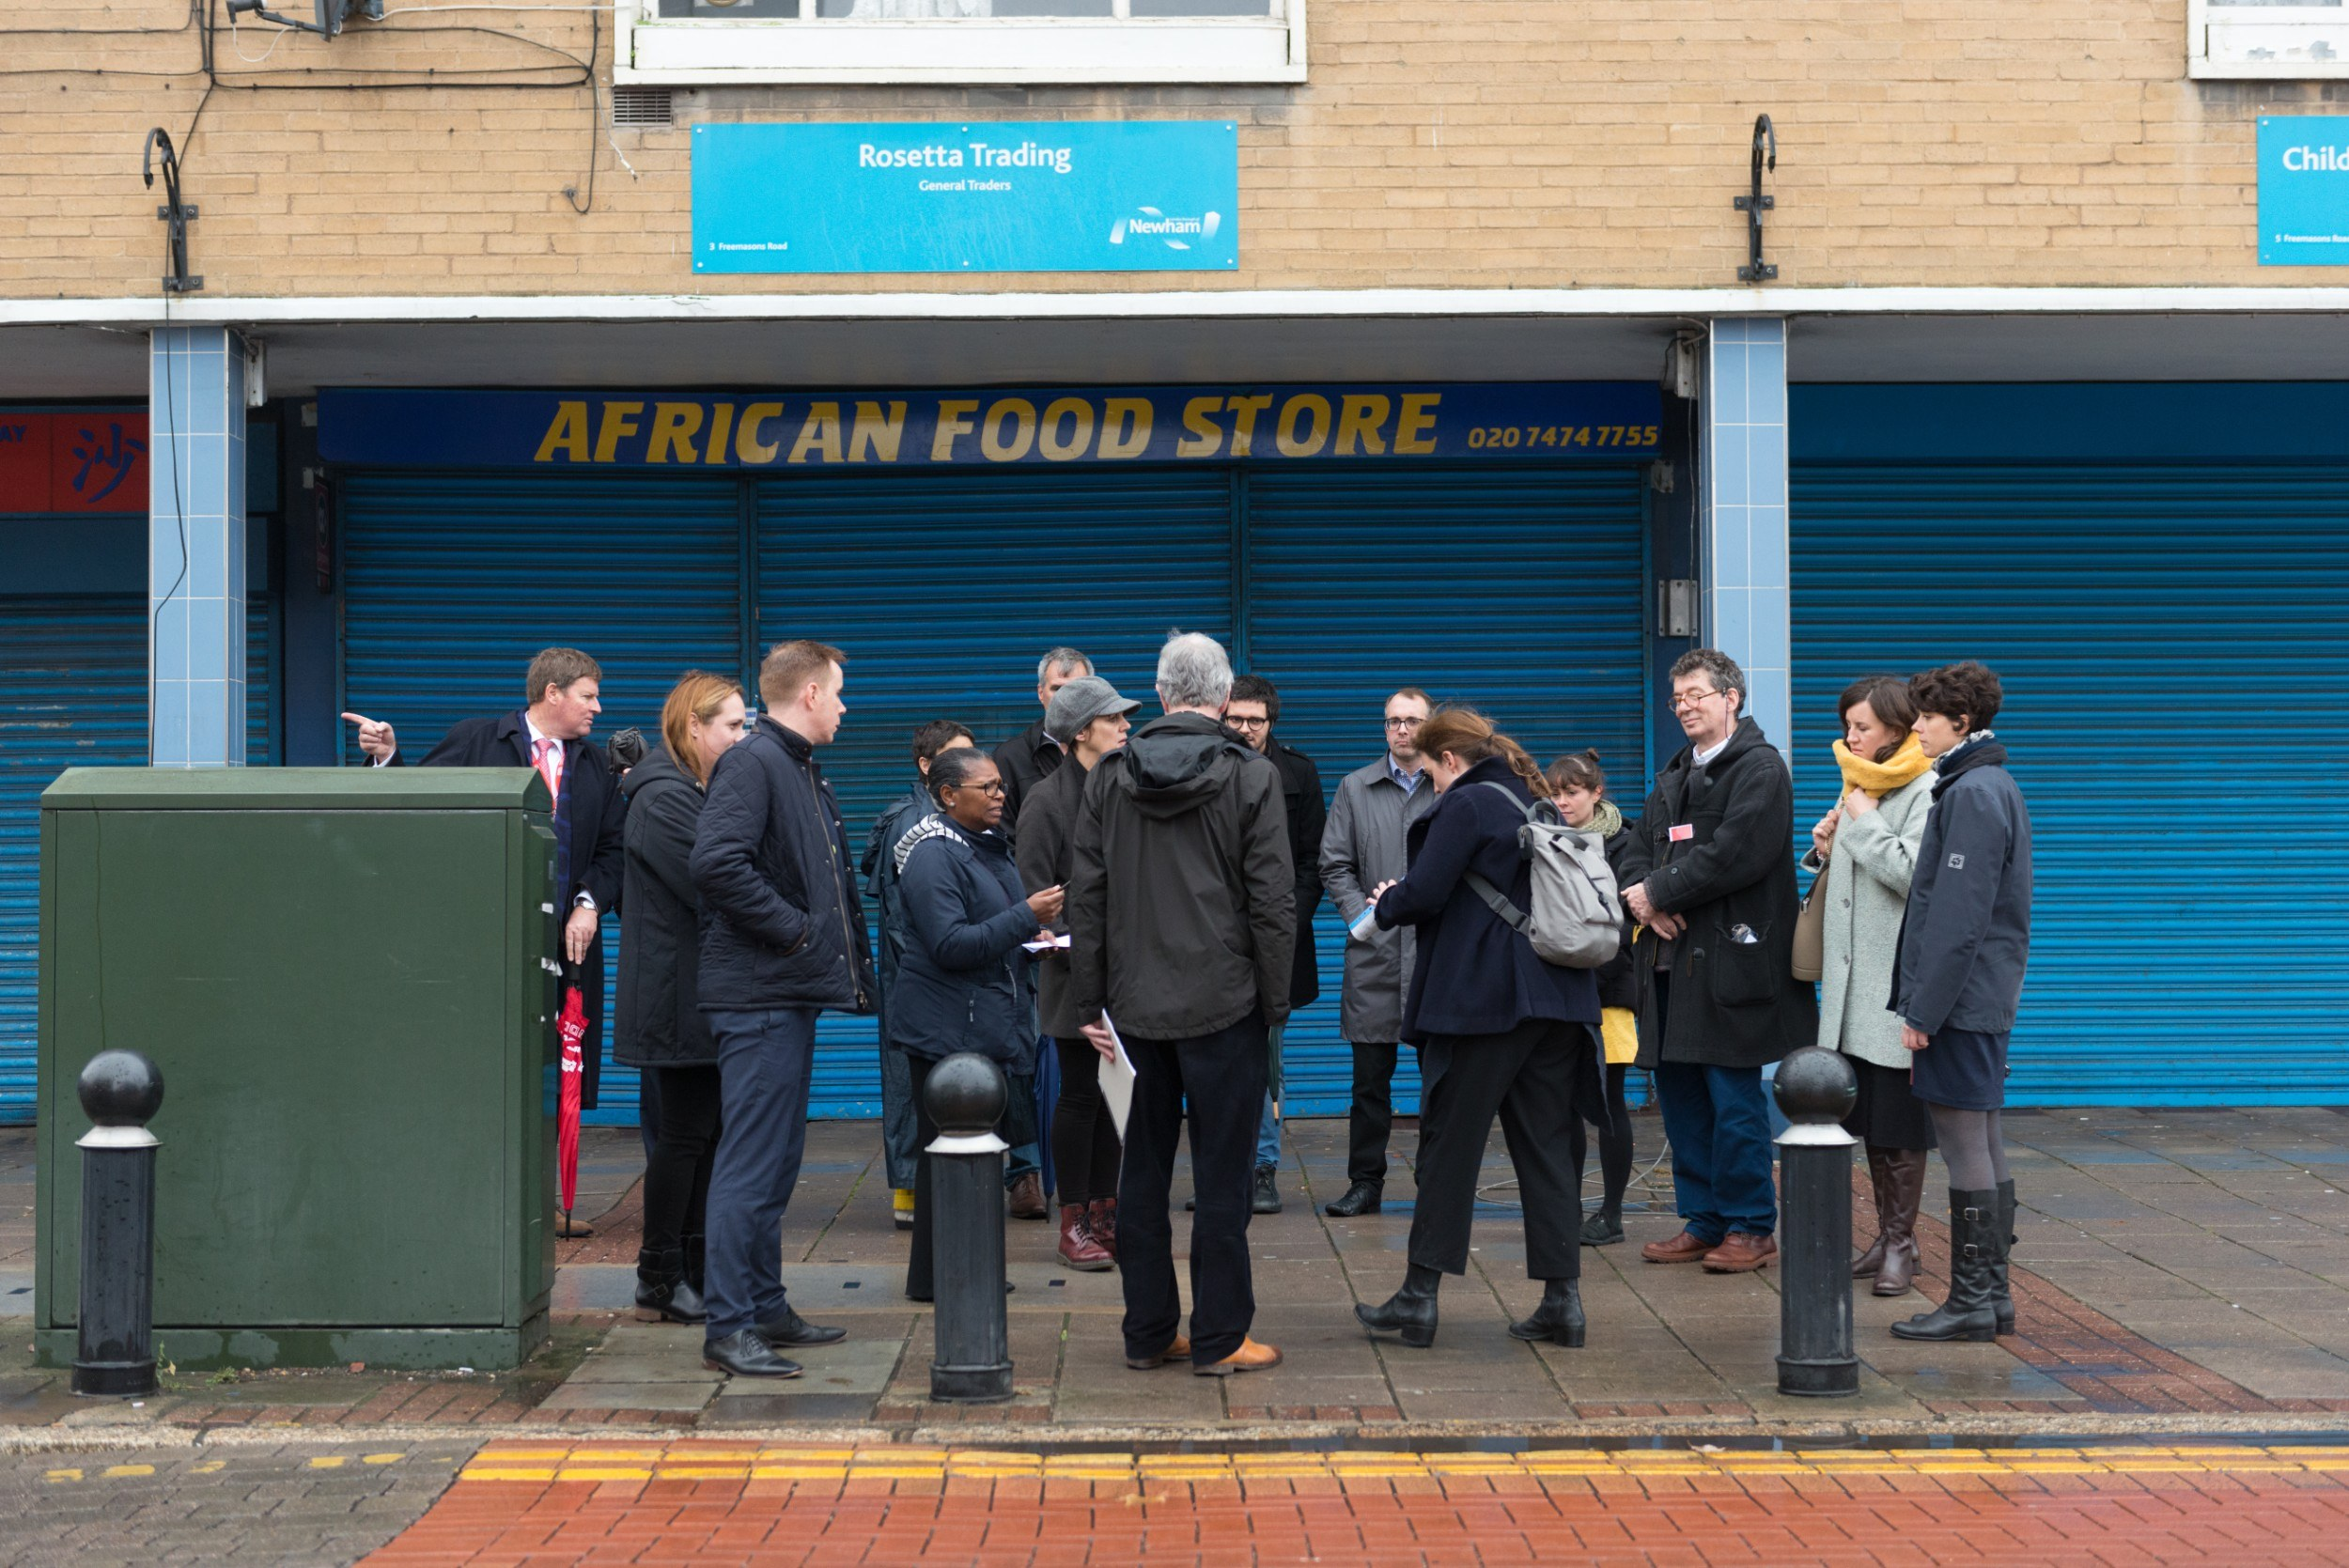 Group of people standing outside a shuttered shopfront